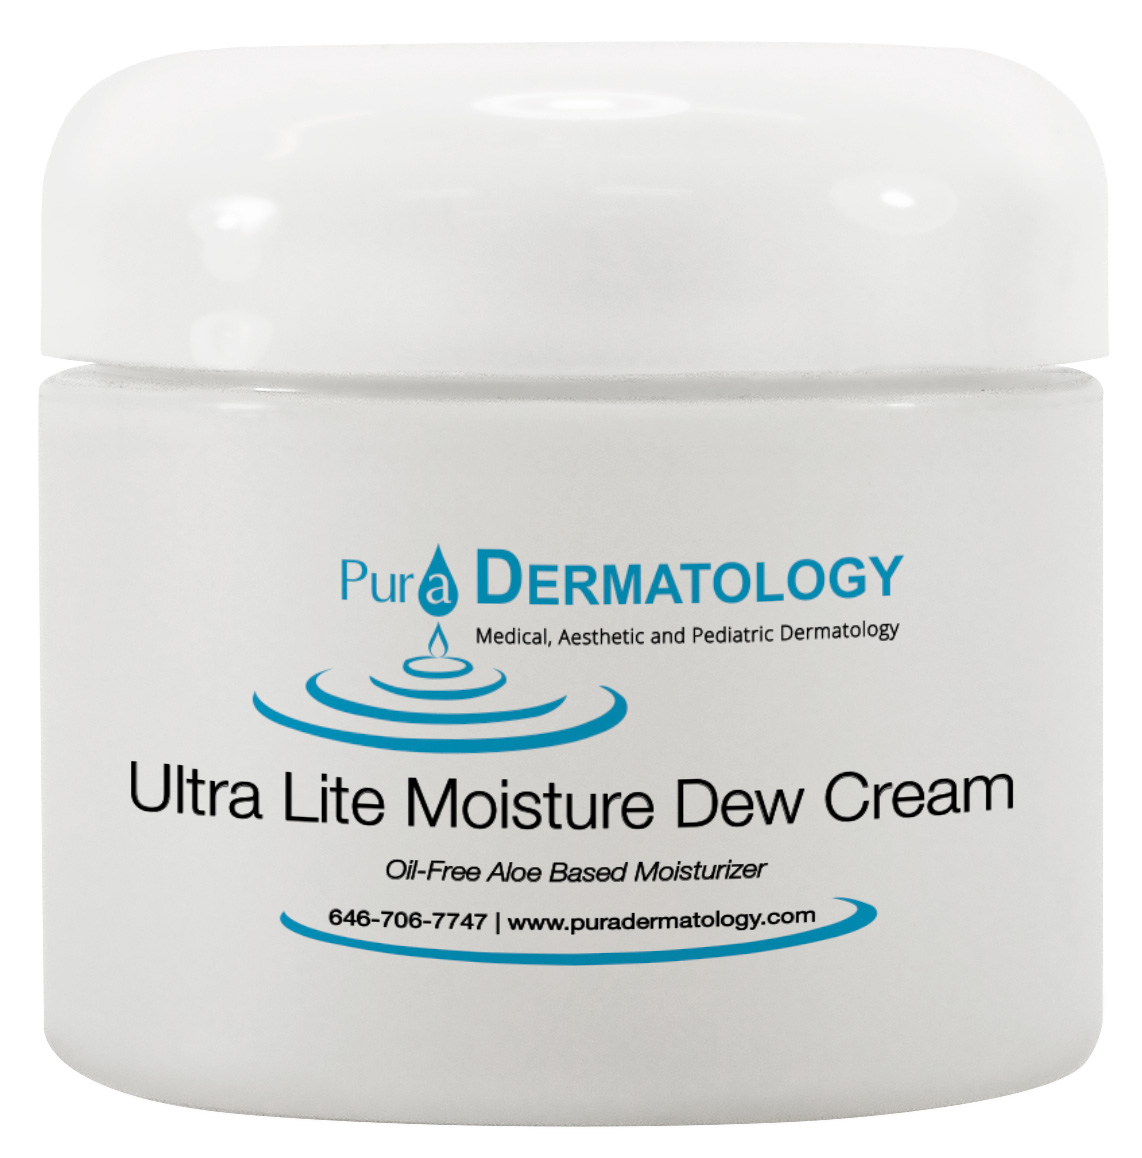 Ultra Lite Moisture Dew Cream